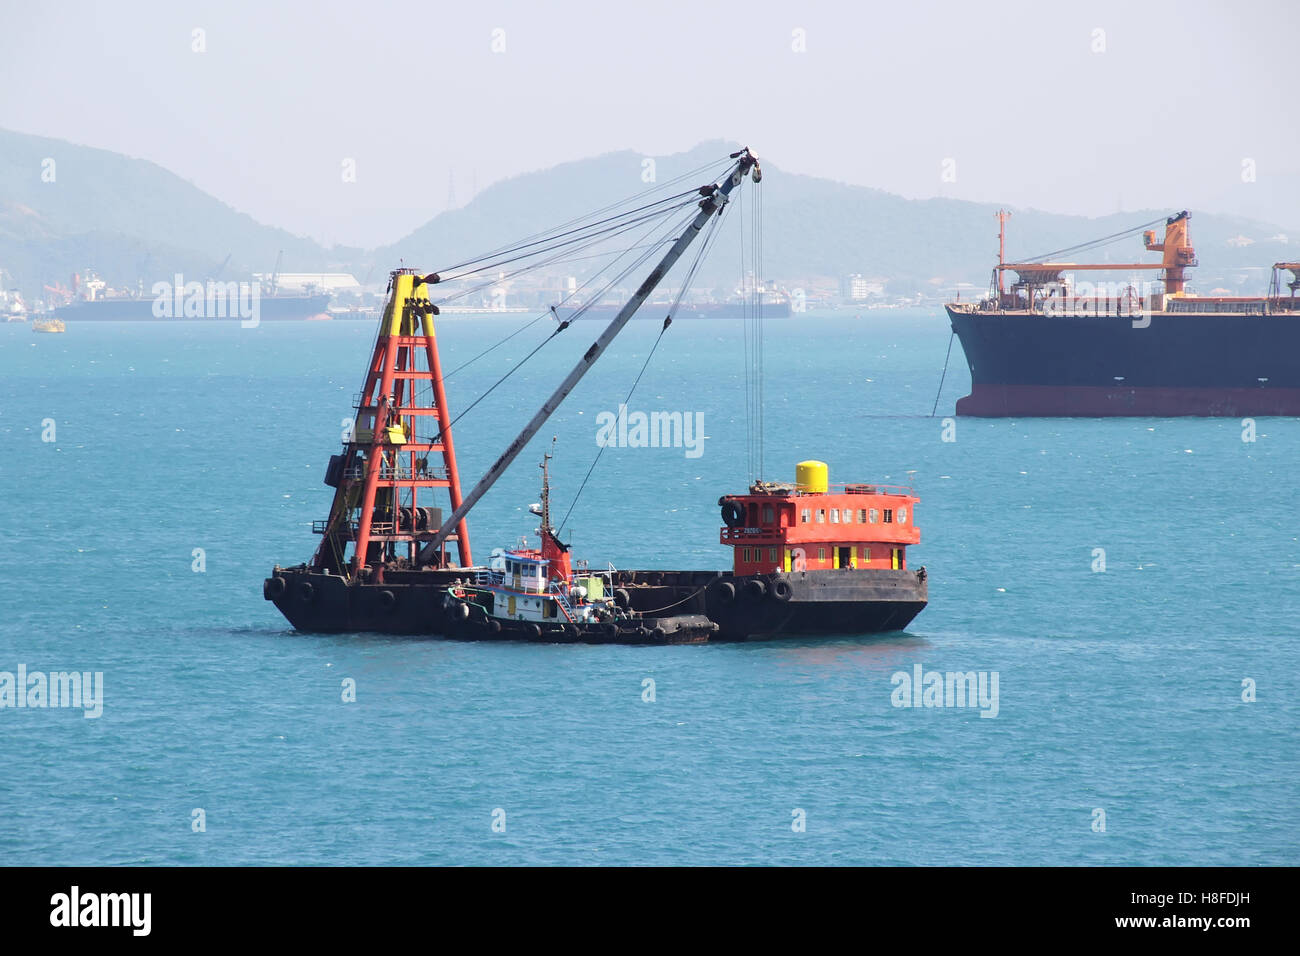 Barge Ship, Cargo Ship, Ocean Vessel in the Sea at Ko Sichang Chonburi, Thailand - Stock Image